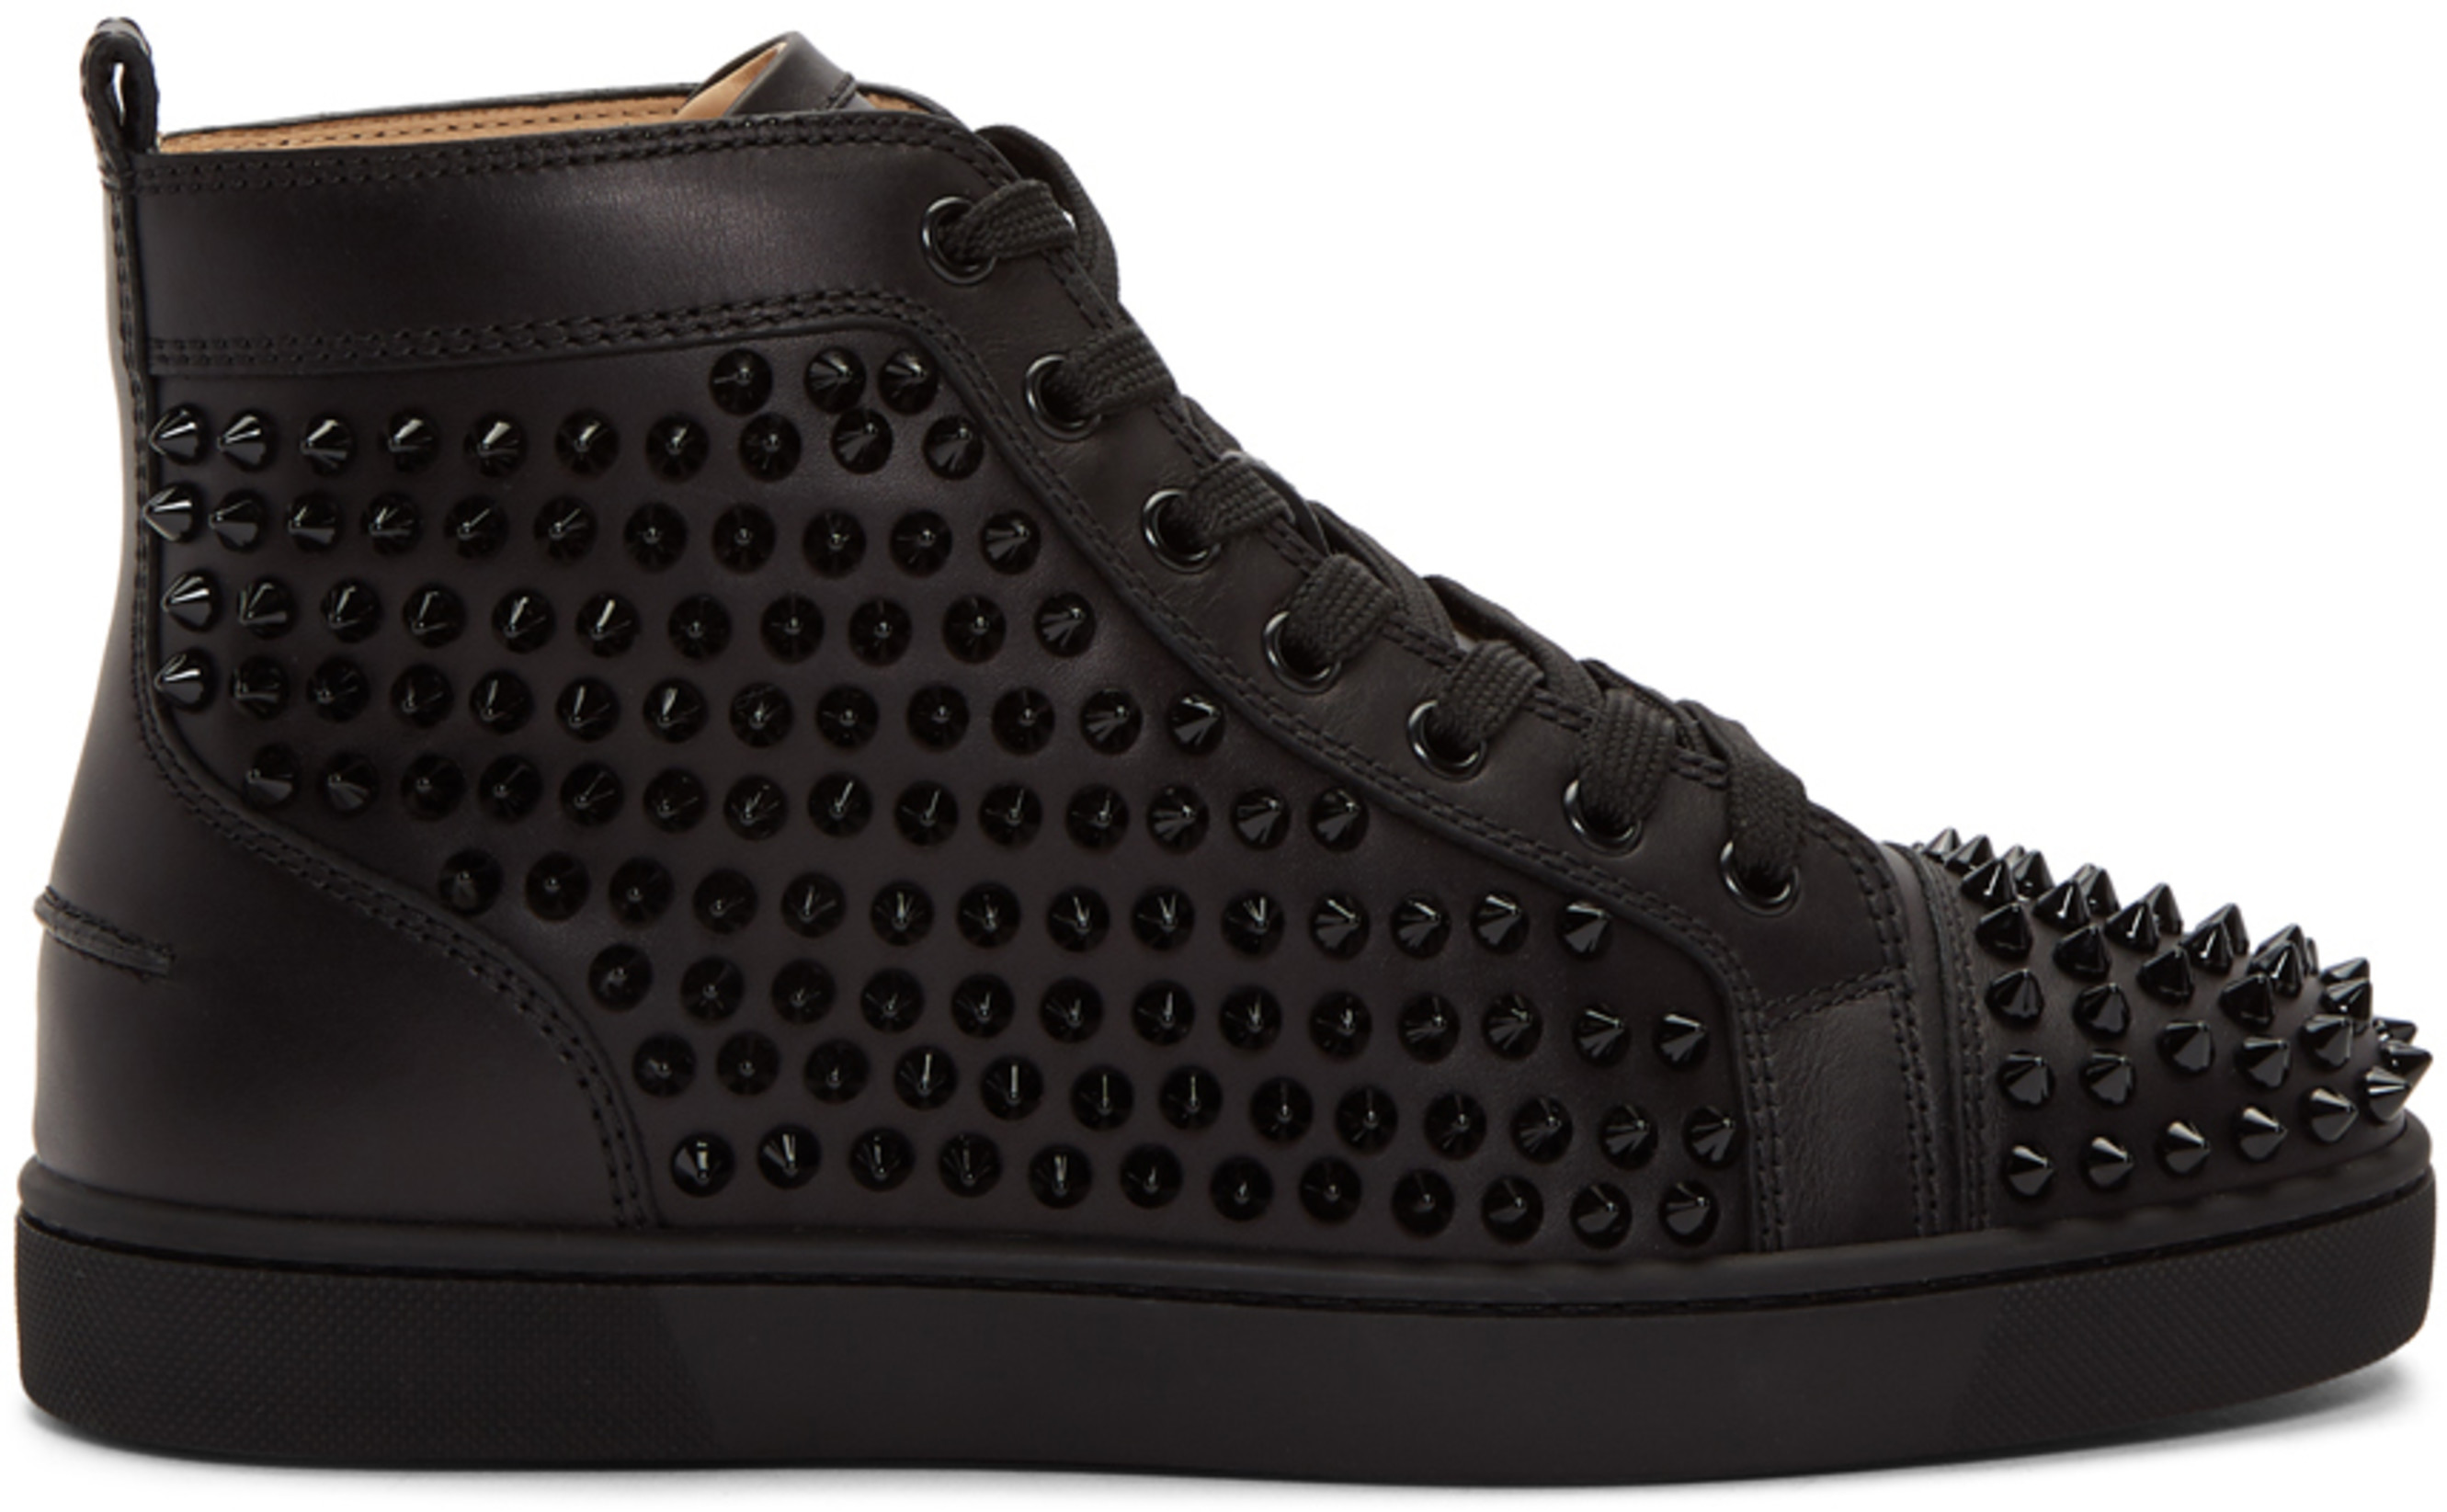 ccb5b1c7bf7 Christian Louboutin for Men SS19 Collection